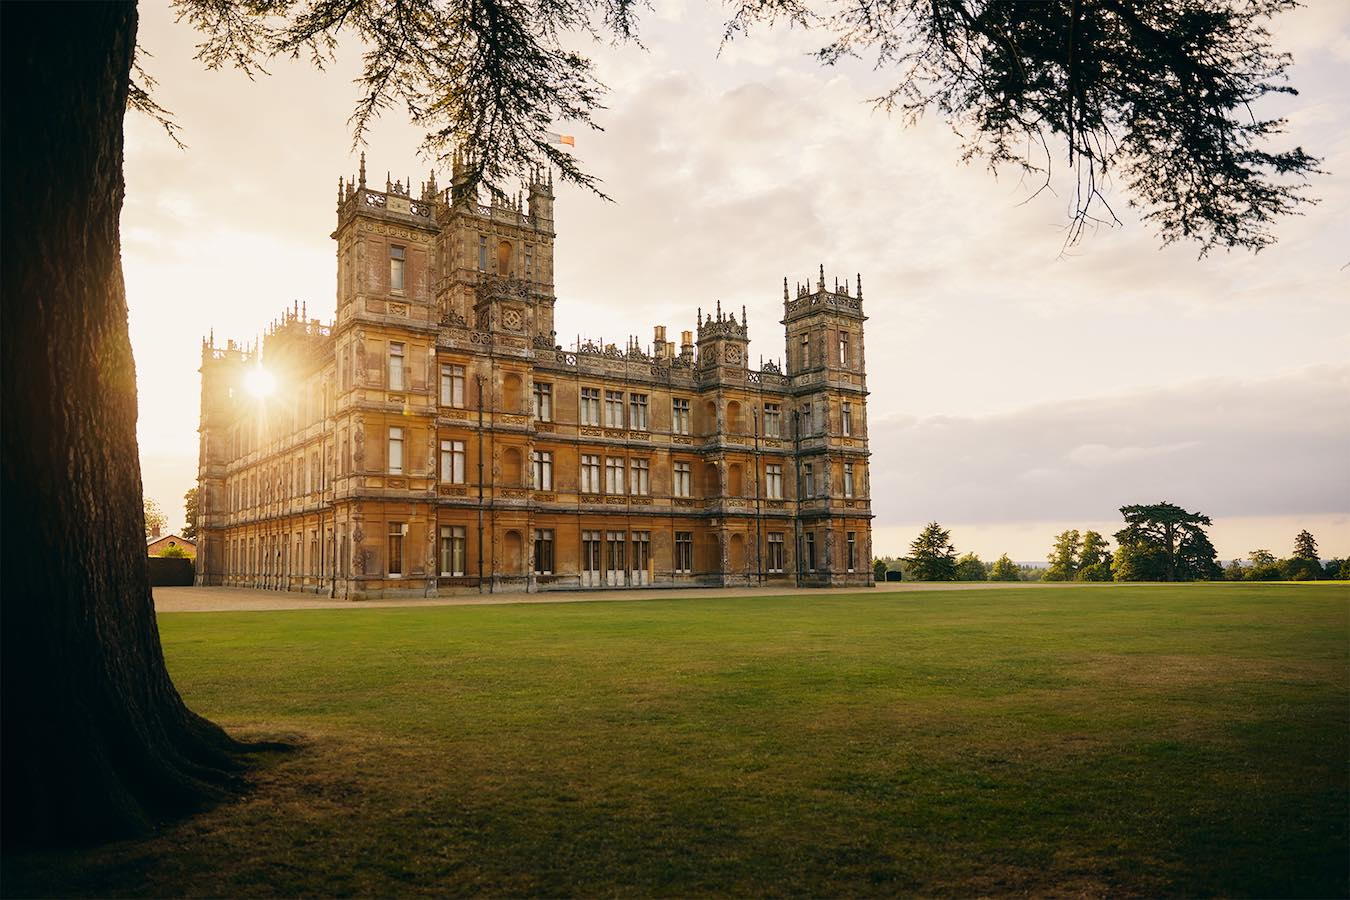 News: booking Downton Abbey's castle on Airbnb for a night